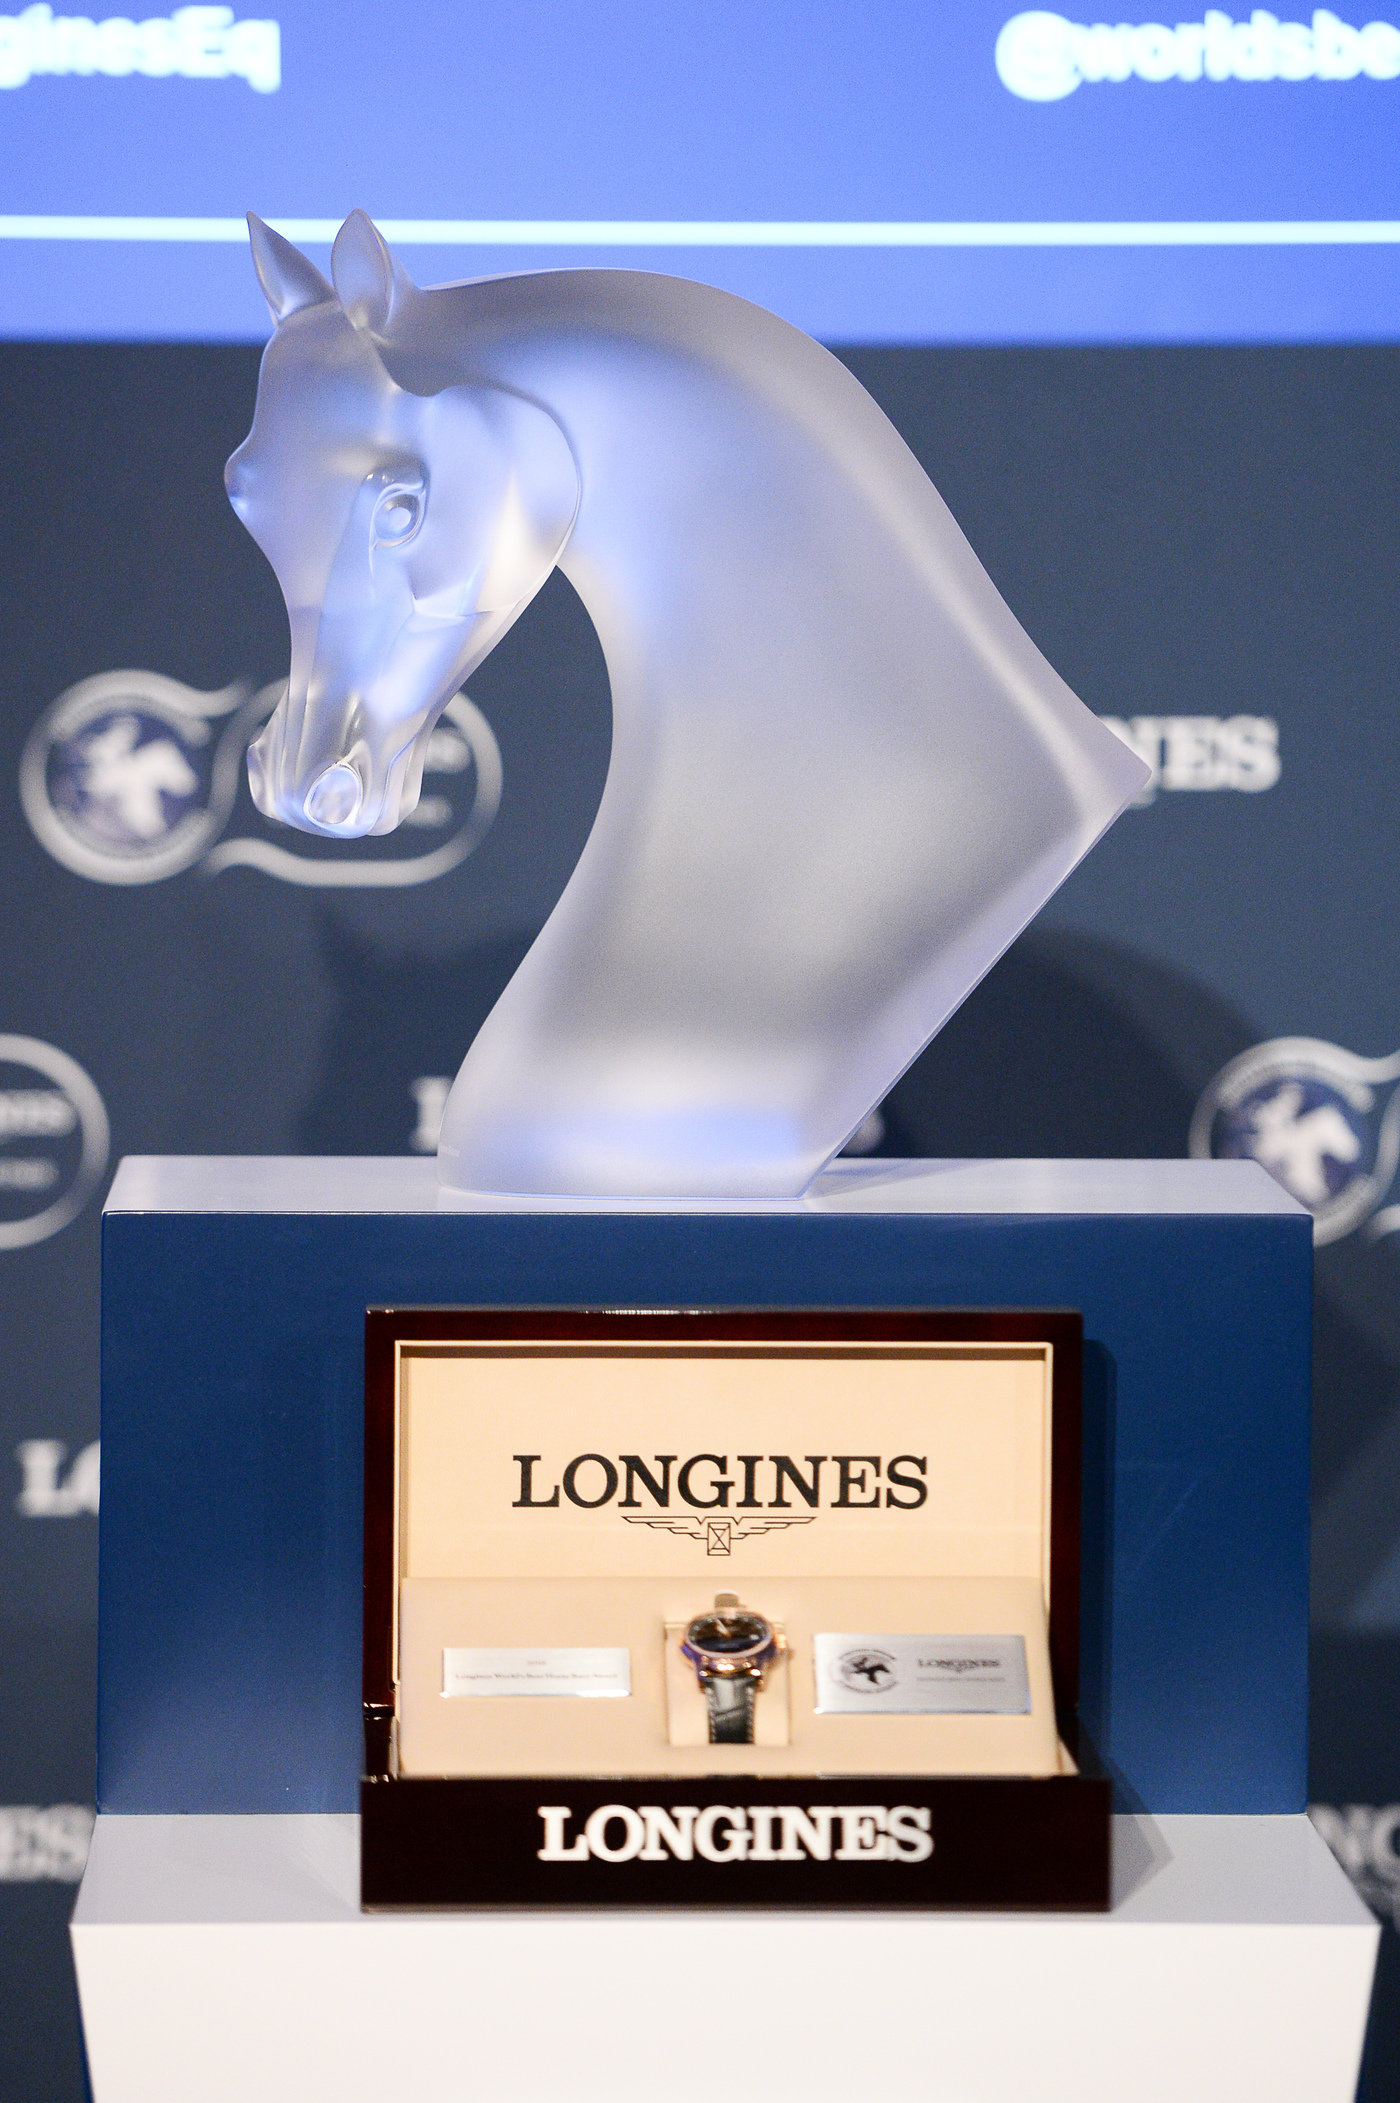 Longines Flat Racing Event: Winx and Cracksman named the 2018 Longines World's Best Racehorses, Qatar Prix de l'Arc de Triomphe crowned Longines World's Best Horse Race for the third time 4